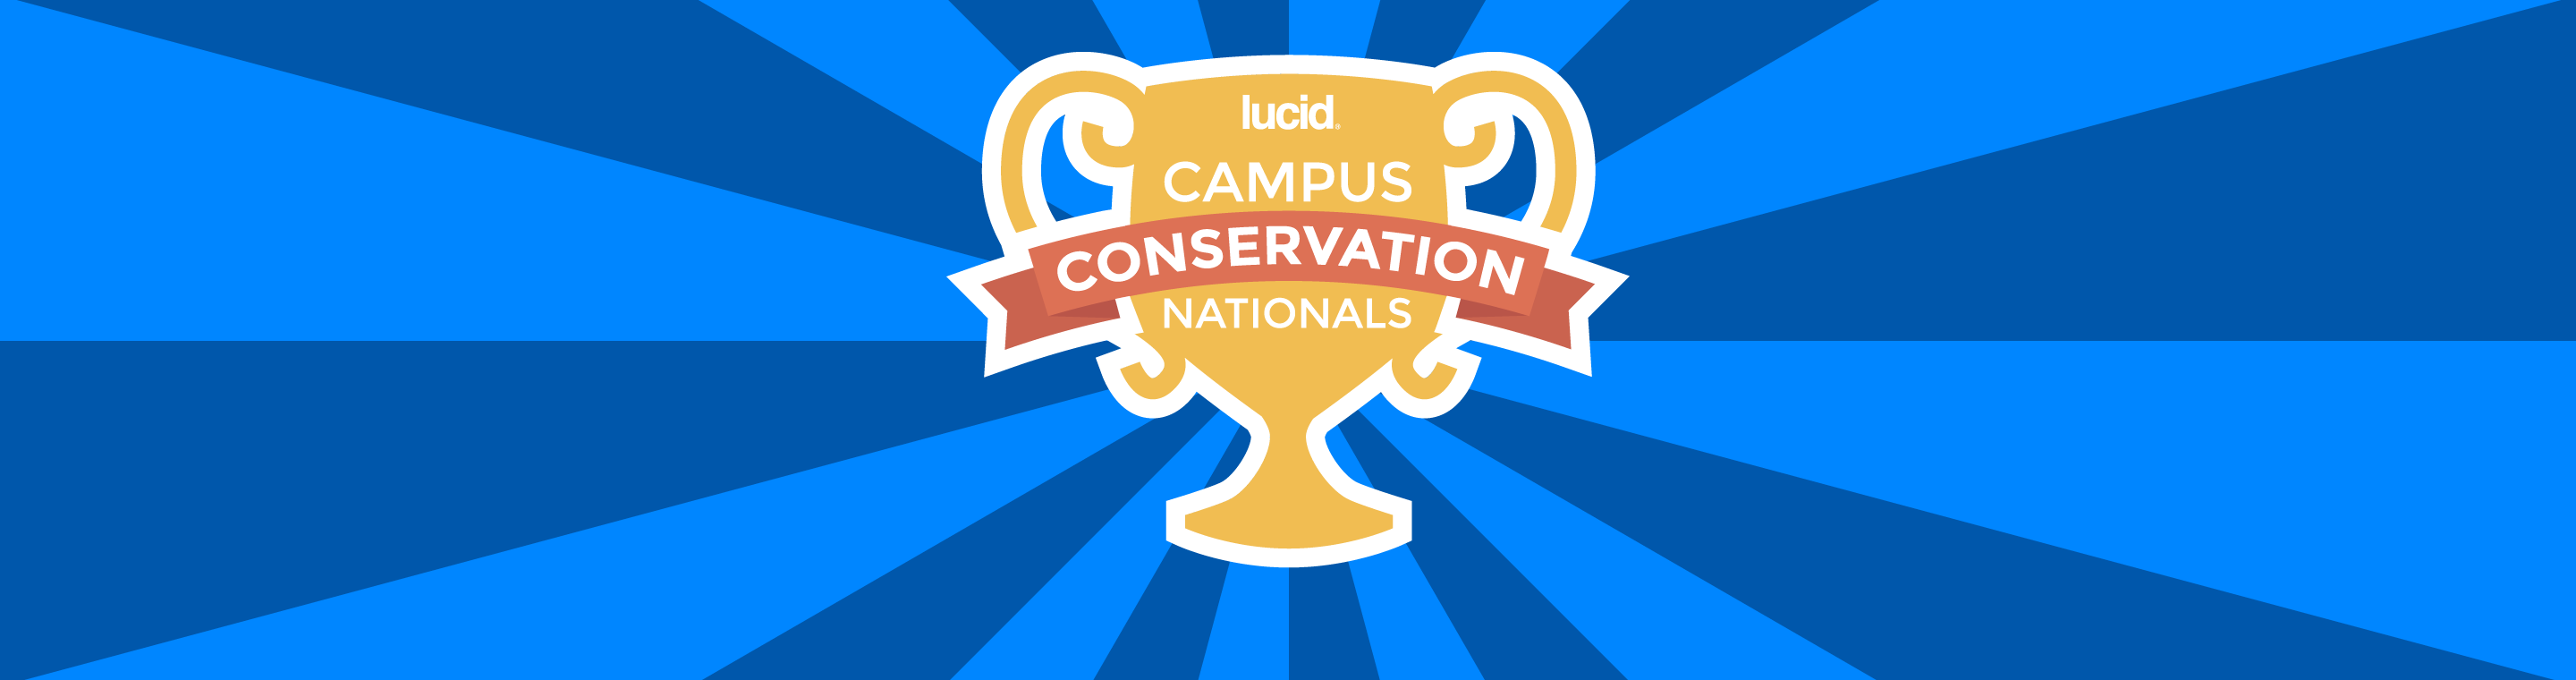 Sustainability - Campus Conservation Nationals